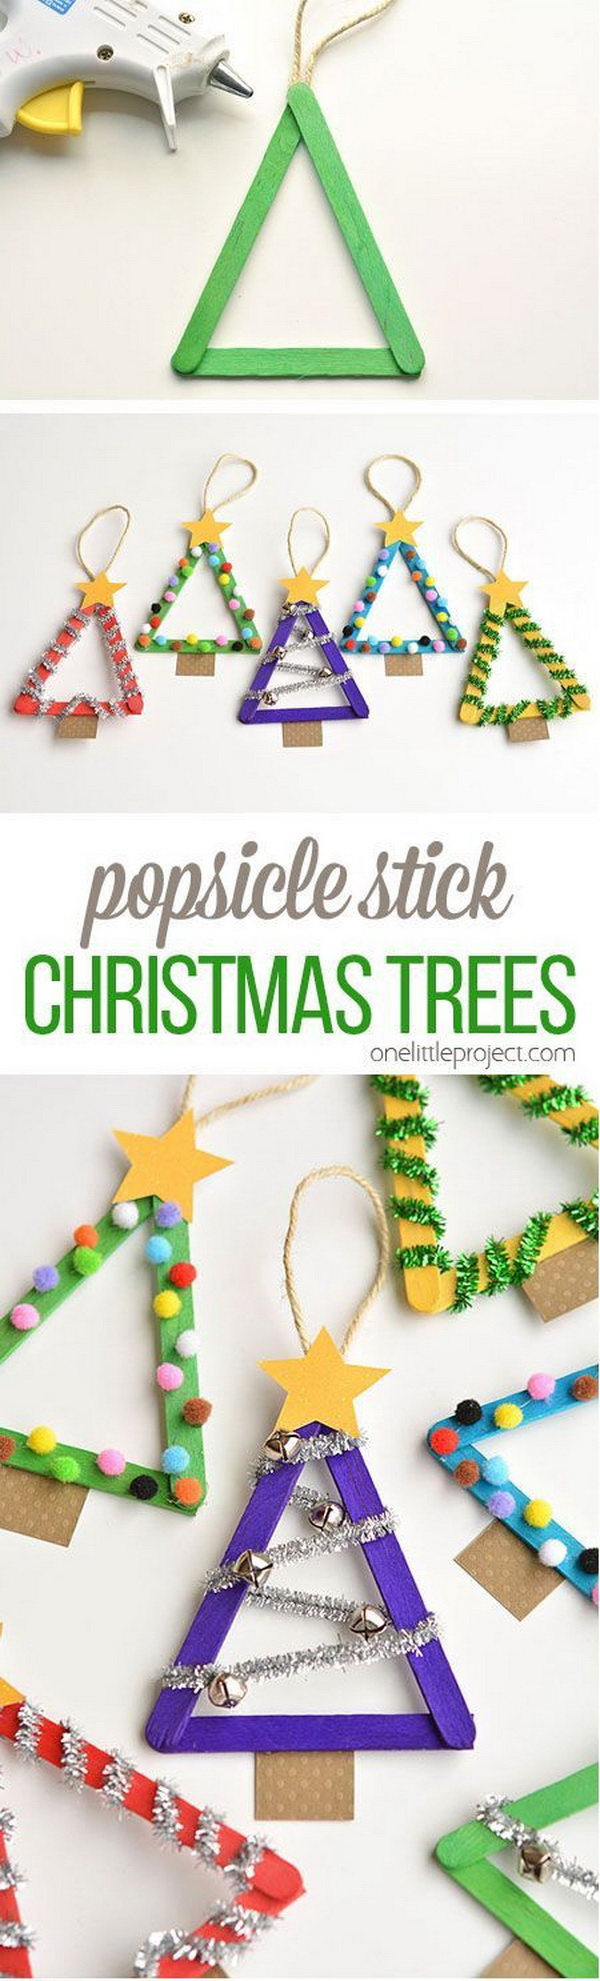 35 Easy And Fun Diy Christmas Crafts For You And Your Kids To Have Fun For Creative Juice